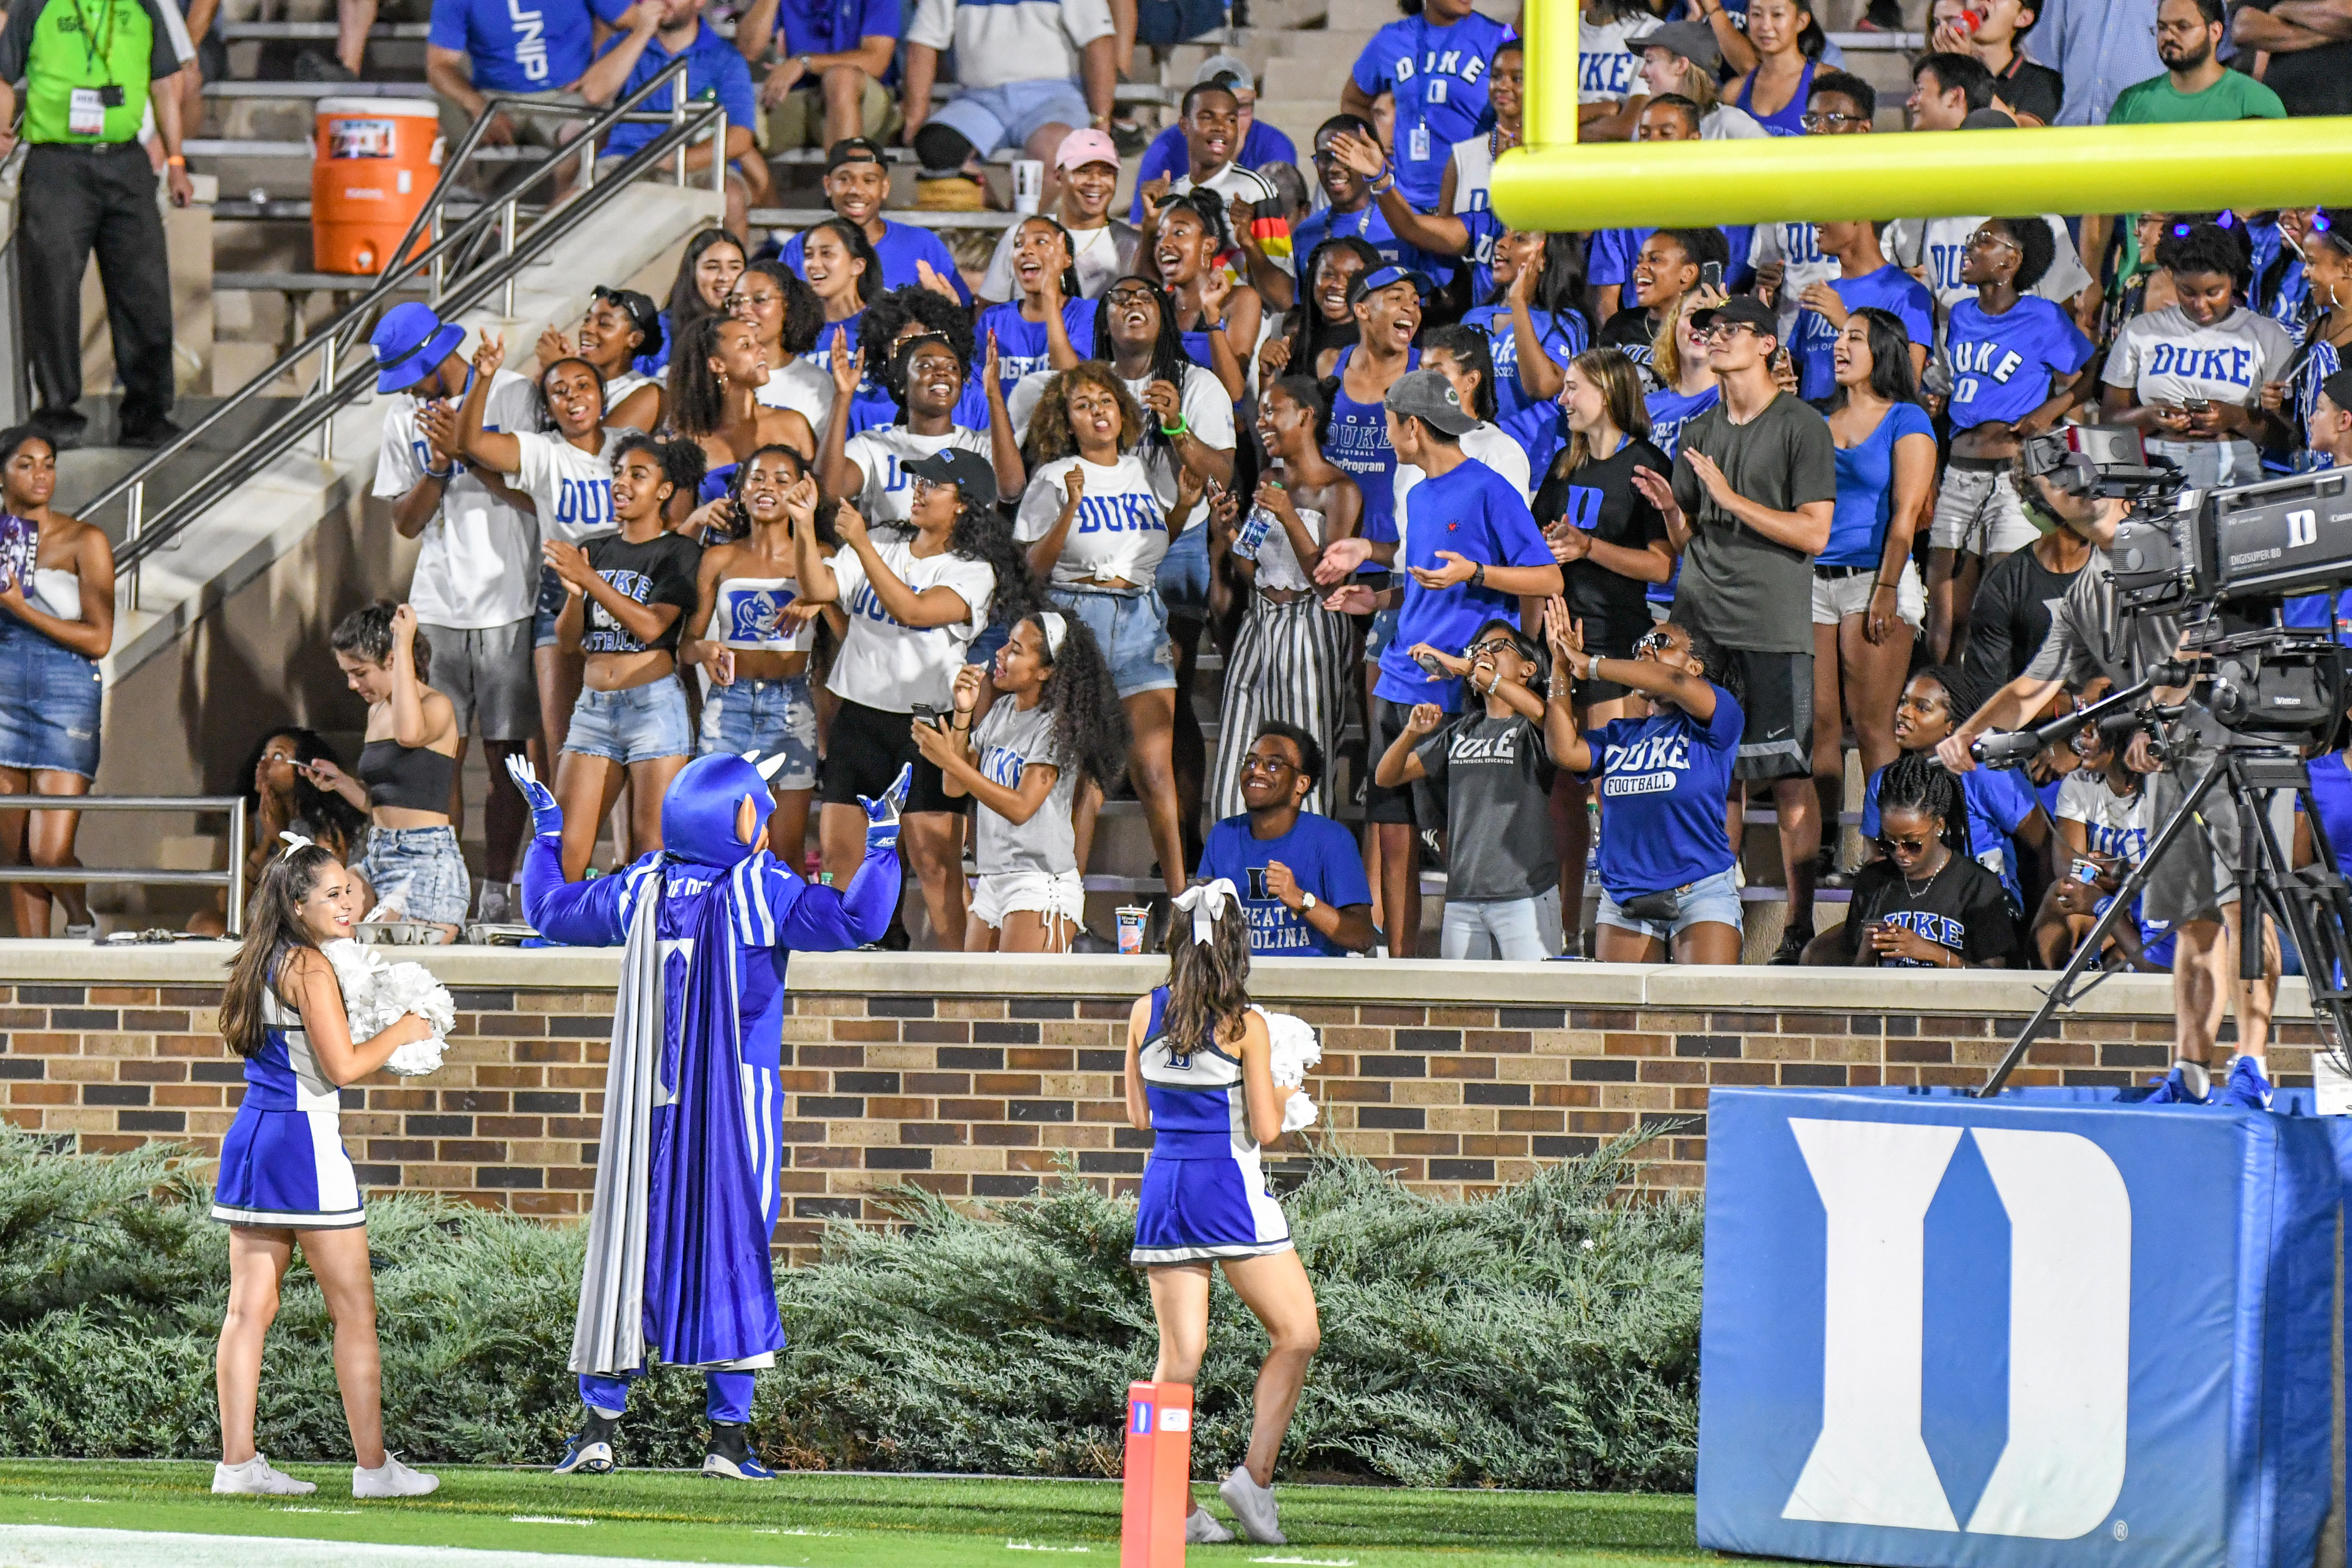 COLLEGE FOOTBALL: AUG 31 Army at Duke